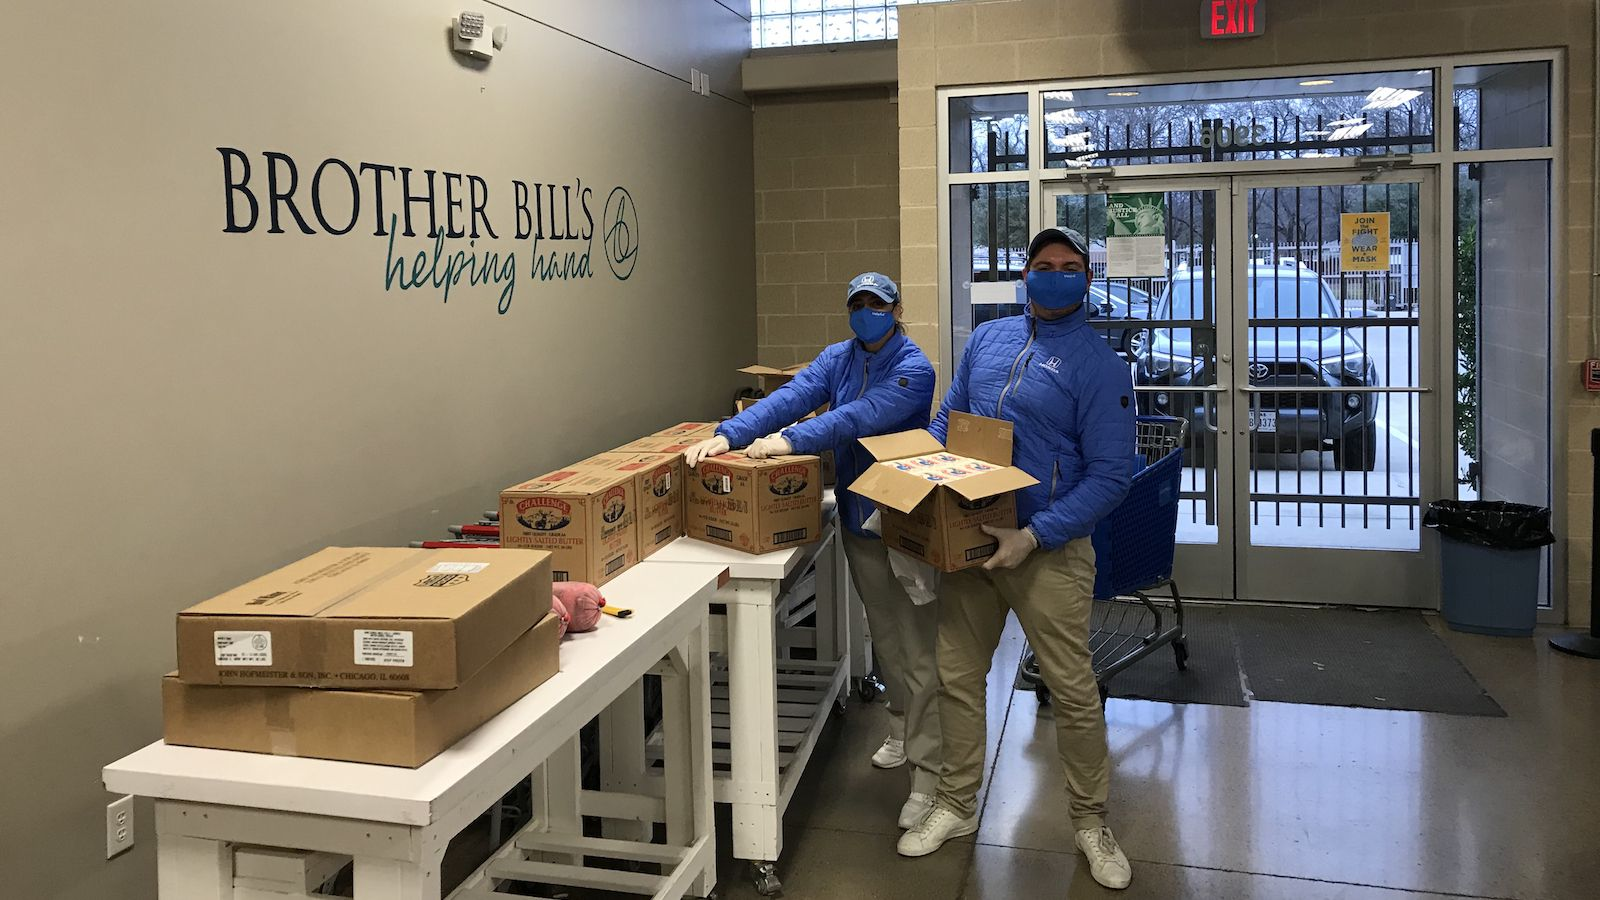 Brother Bill's Helping Hand is one of the many organizations the Helpful Honda Guys have worked with over the last year. The community ambassadors were able to keep up random acts of helpfulness in D-FW with the help of the VOMO platform.